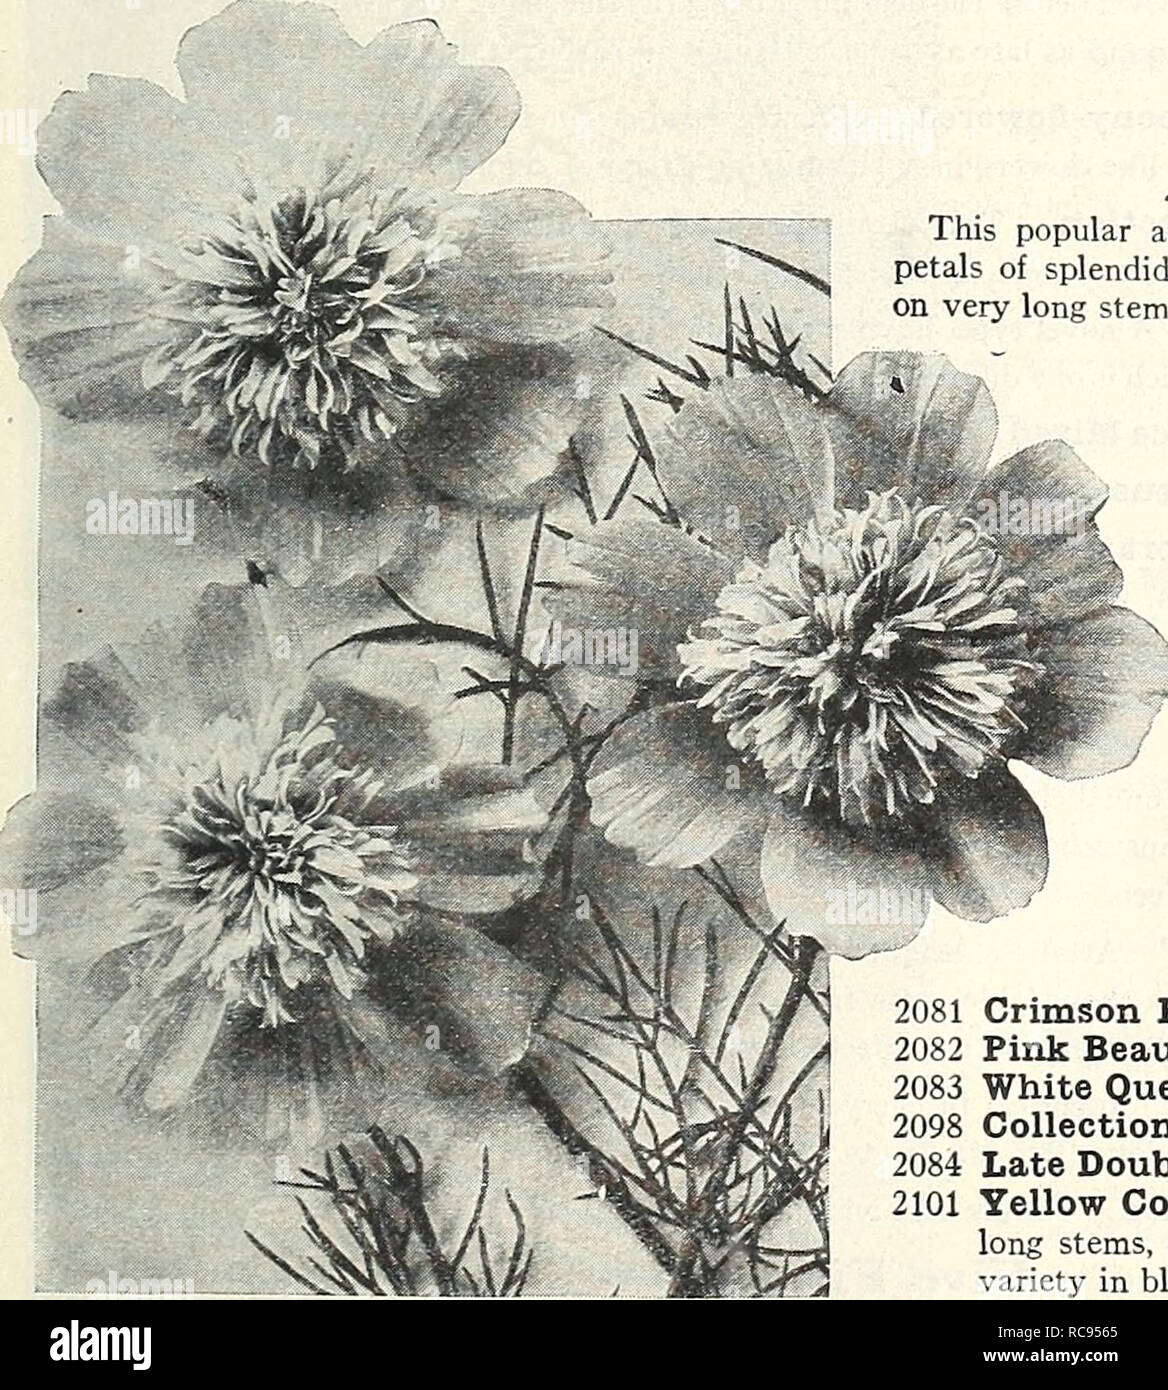 . Dreer's garden book 1929. Seeds Catalogs; Nursery stock Catalogs; Gardening Equipment and supplies Catalogs; Flowers Seeds Catalogs; Vegetables Seeds Catalogs; Fruit Seeds Catalogs. /flEHByA-Bimf RELIAiliE FLOWER SEEDS. >HIHBE[Wll| 81 COSMOS Beautiful summer and autumn blooming plants. They produce thousands of artistic flowers in pure white, pink and crimson shades, furnishing an abundance of cut blooms for autumn decorations when other flowers are scarce. Should be sown in Spring in the open ground, when danger of frost is past, or the seed may be started under cover and afterwards tran Stock Photo